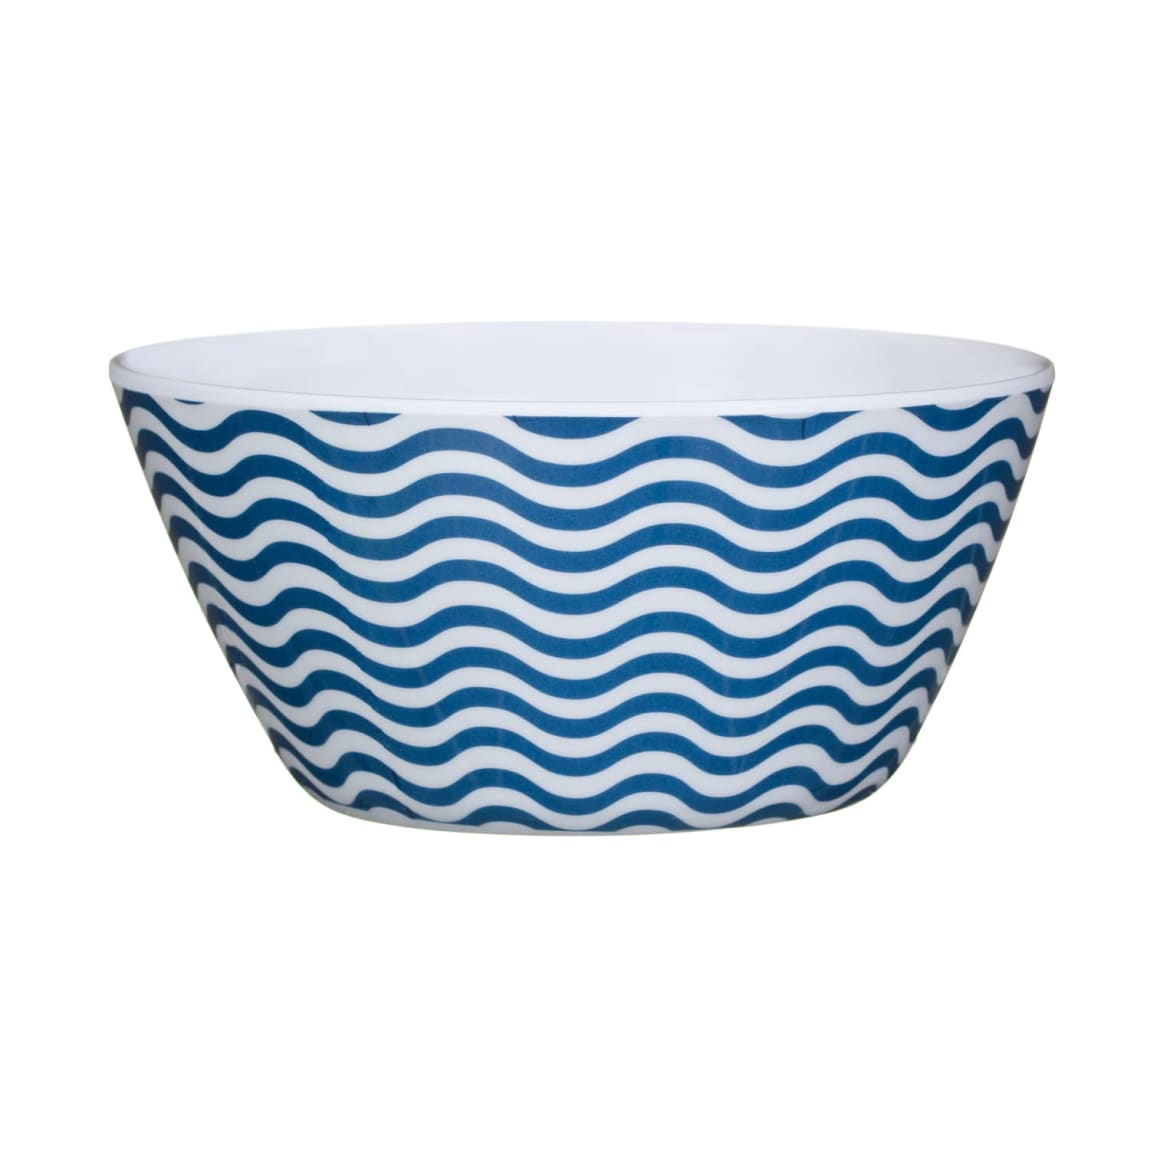 Riviera Small Picnic Bowl - Waves